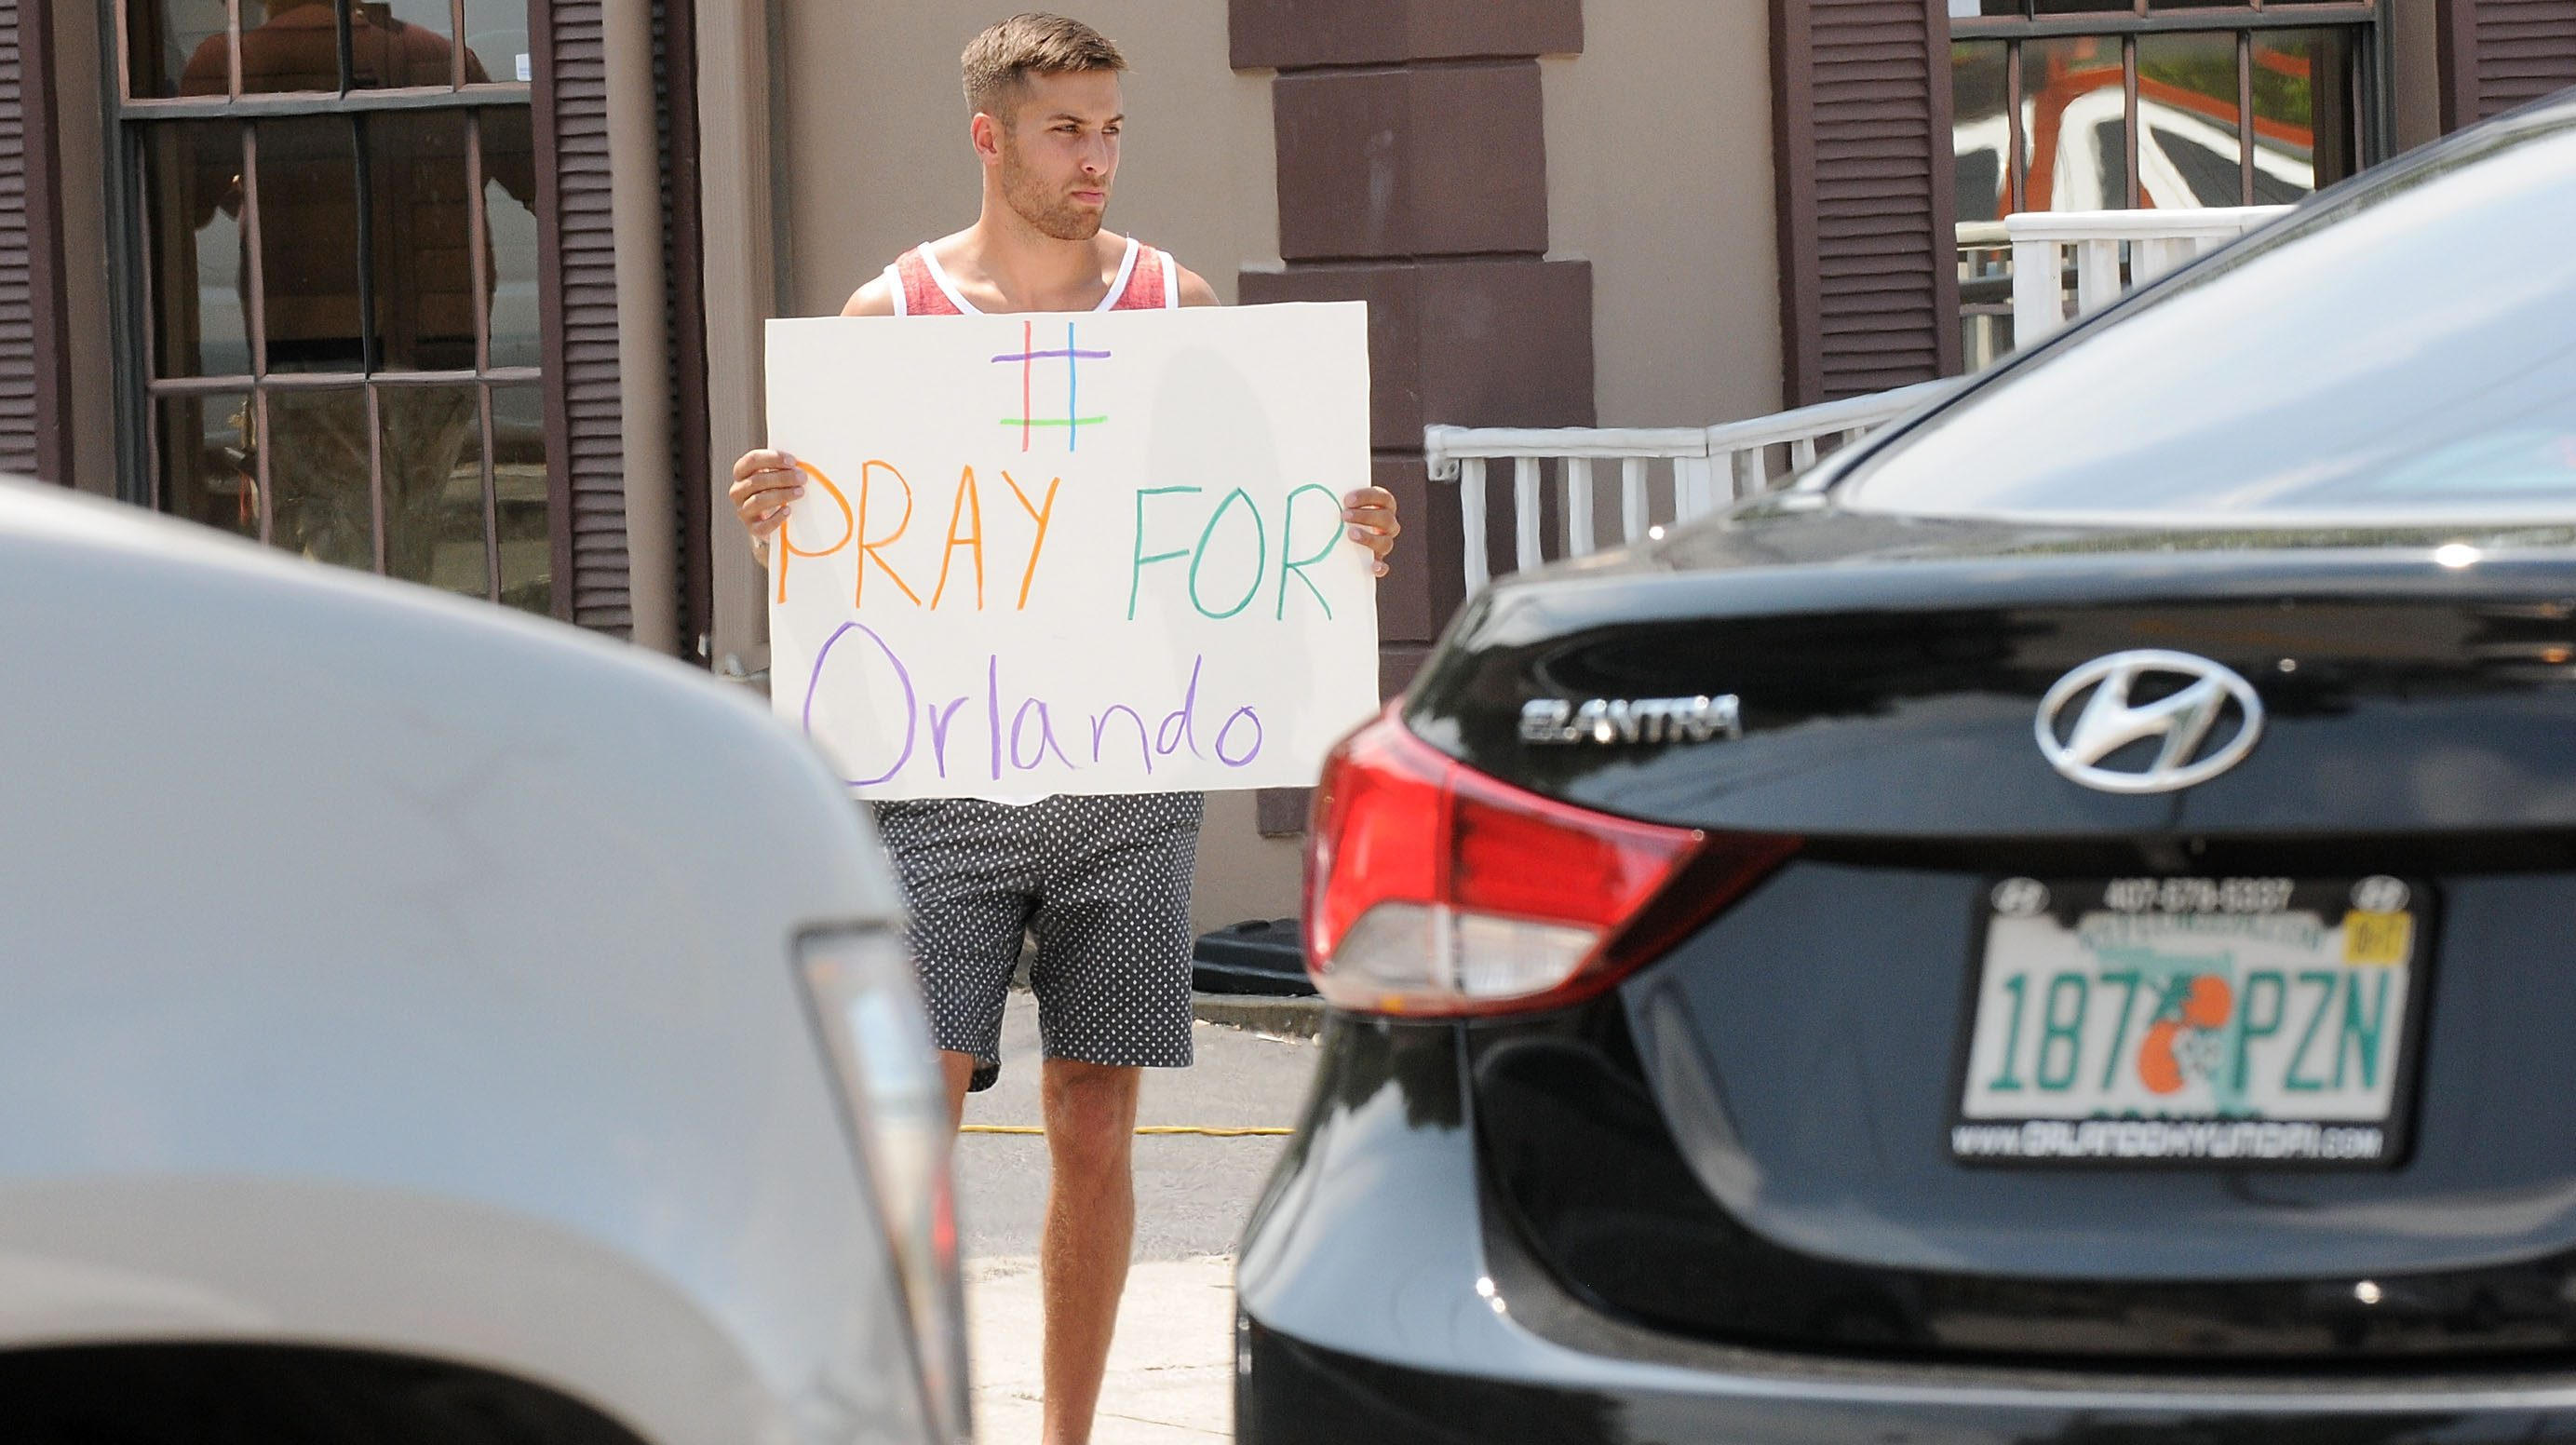 A man holds a sign in support of the victims of the terror attack at gay nightclub Pulse on June 12, 2016 in Orlando, Florida. (Photo by Gerardo Mora/Getty Images)